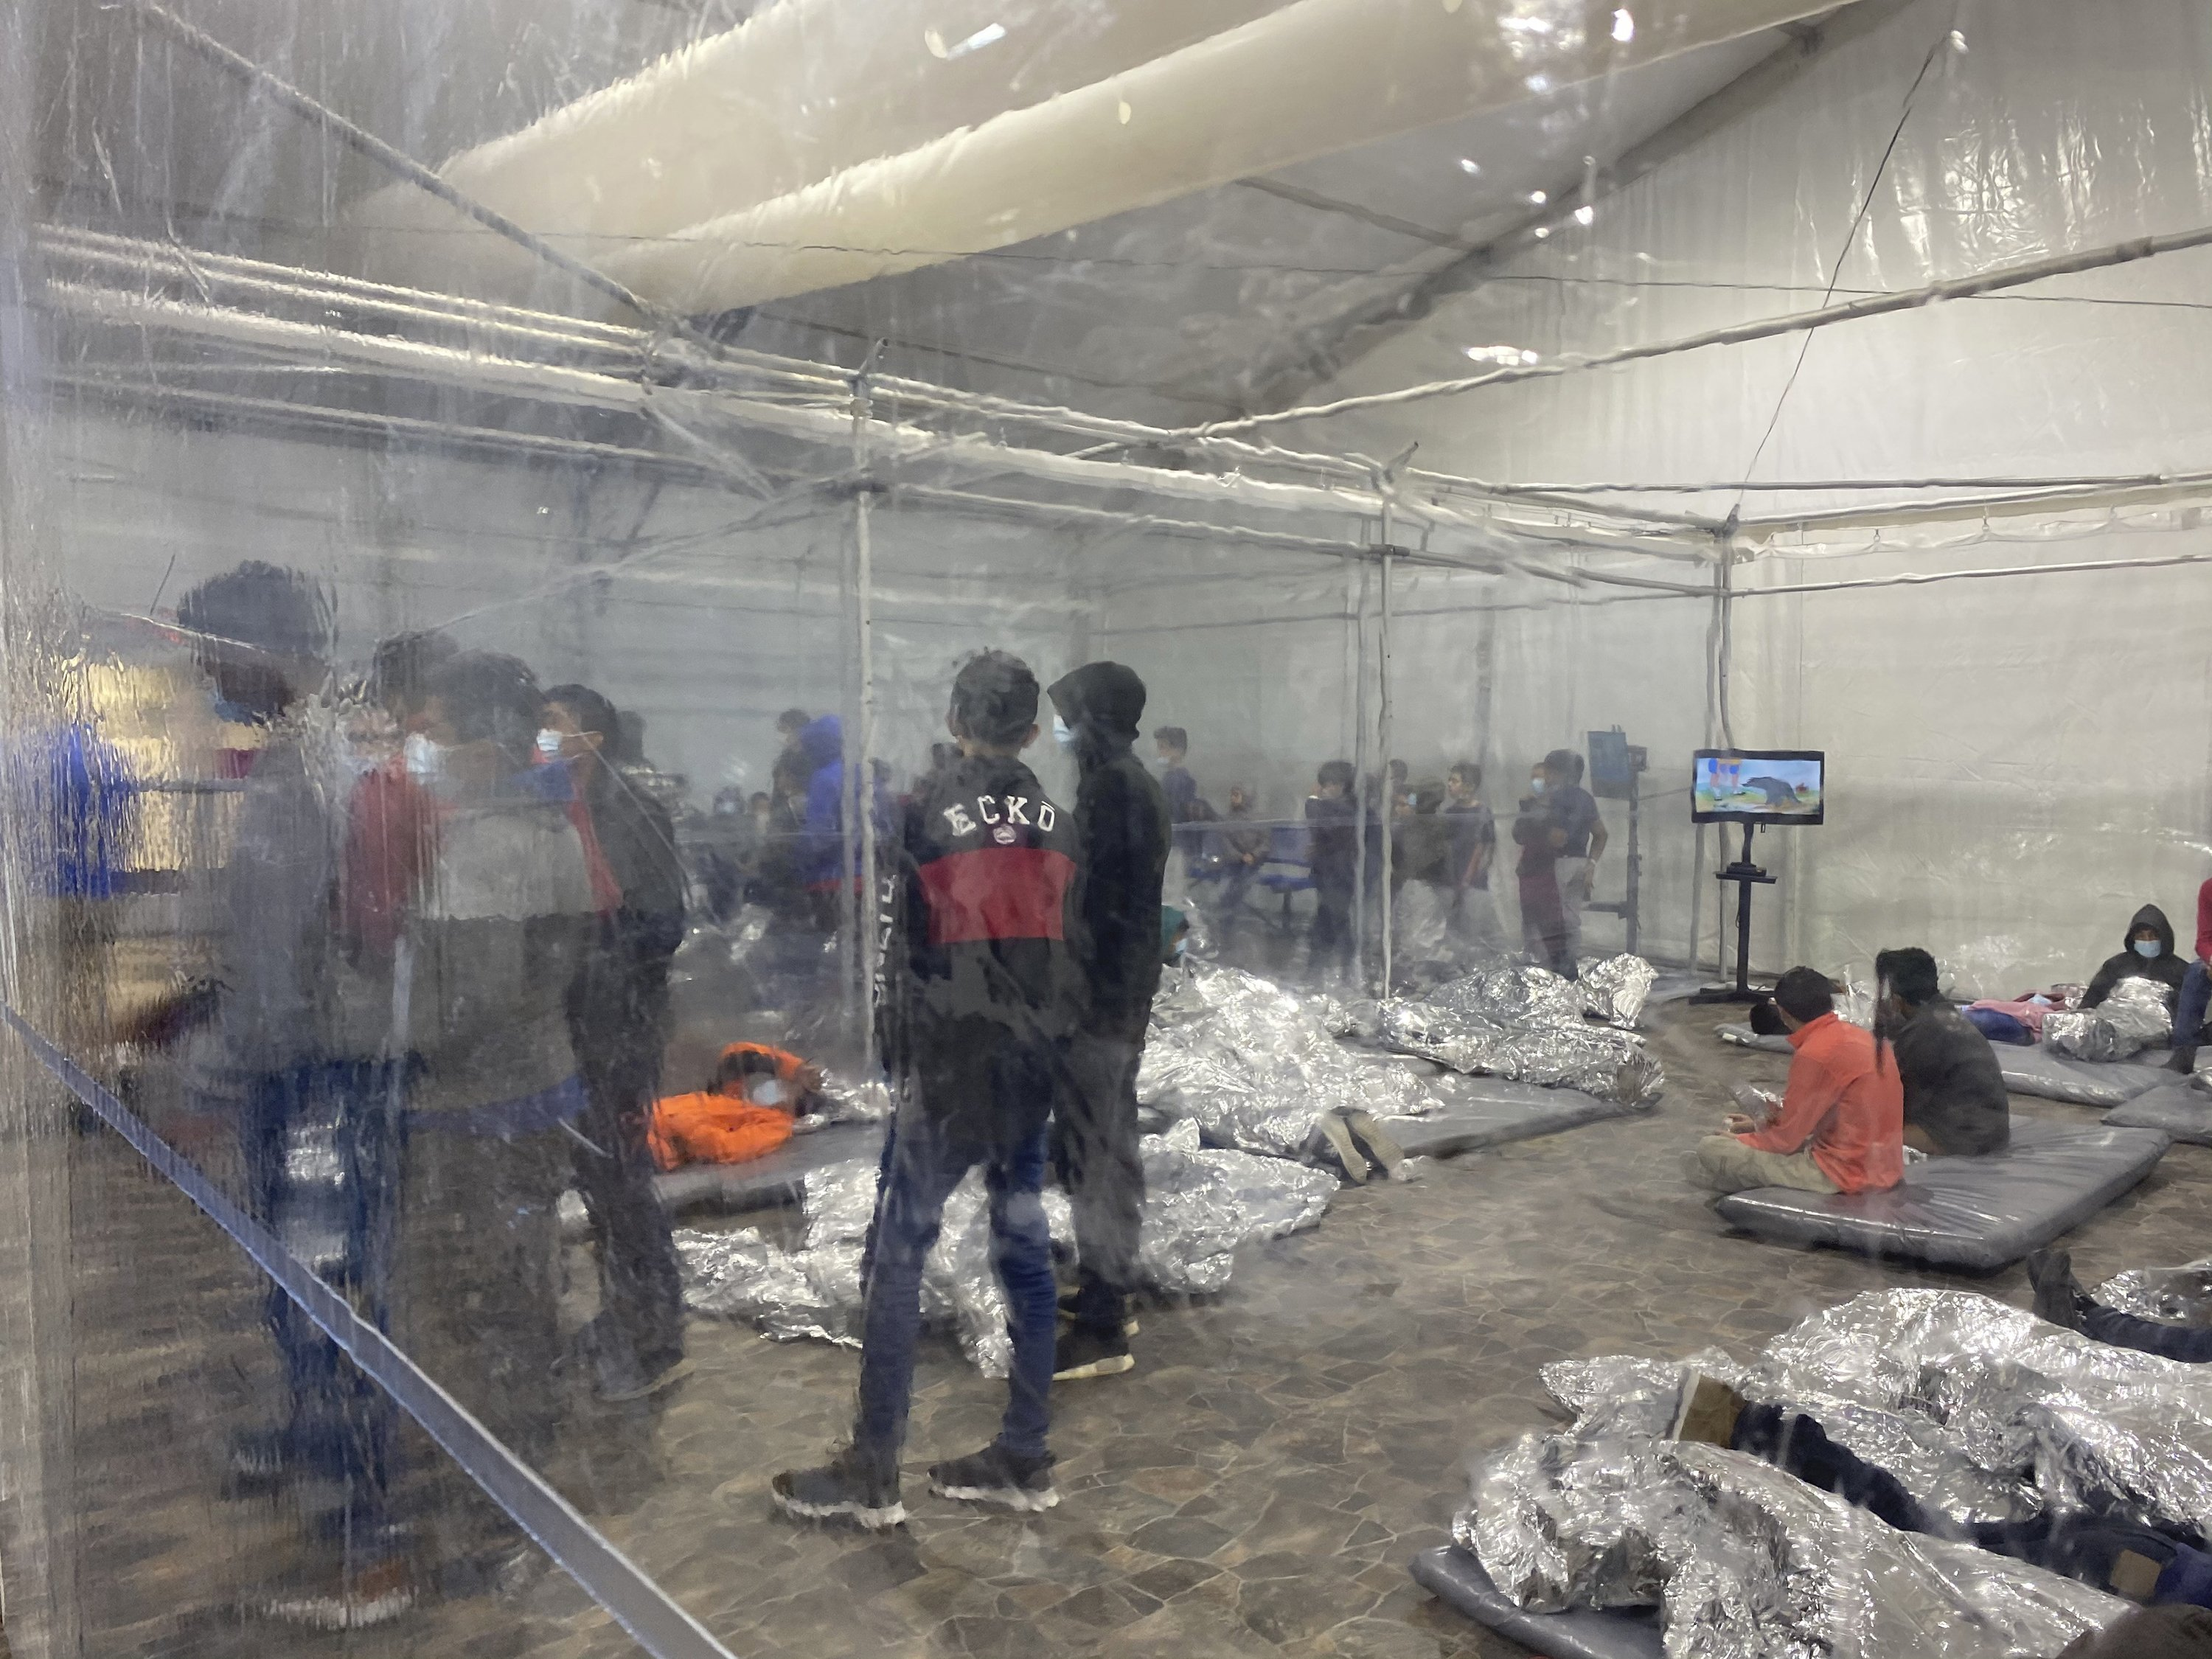 Detainees in a Customs and Border Protection (CBP) temporary overflow facility in Donna, Texas, U.S., March 20, 2021.  (Photo courtesy of the Office of Congressman Henry Cuellar via AP)